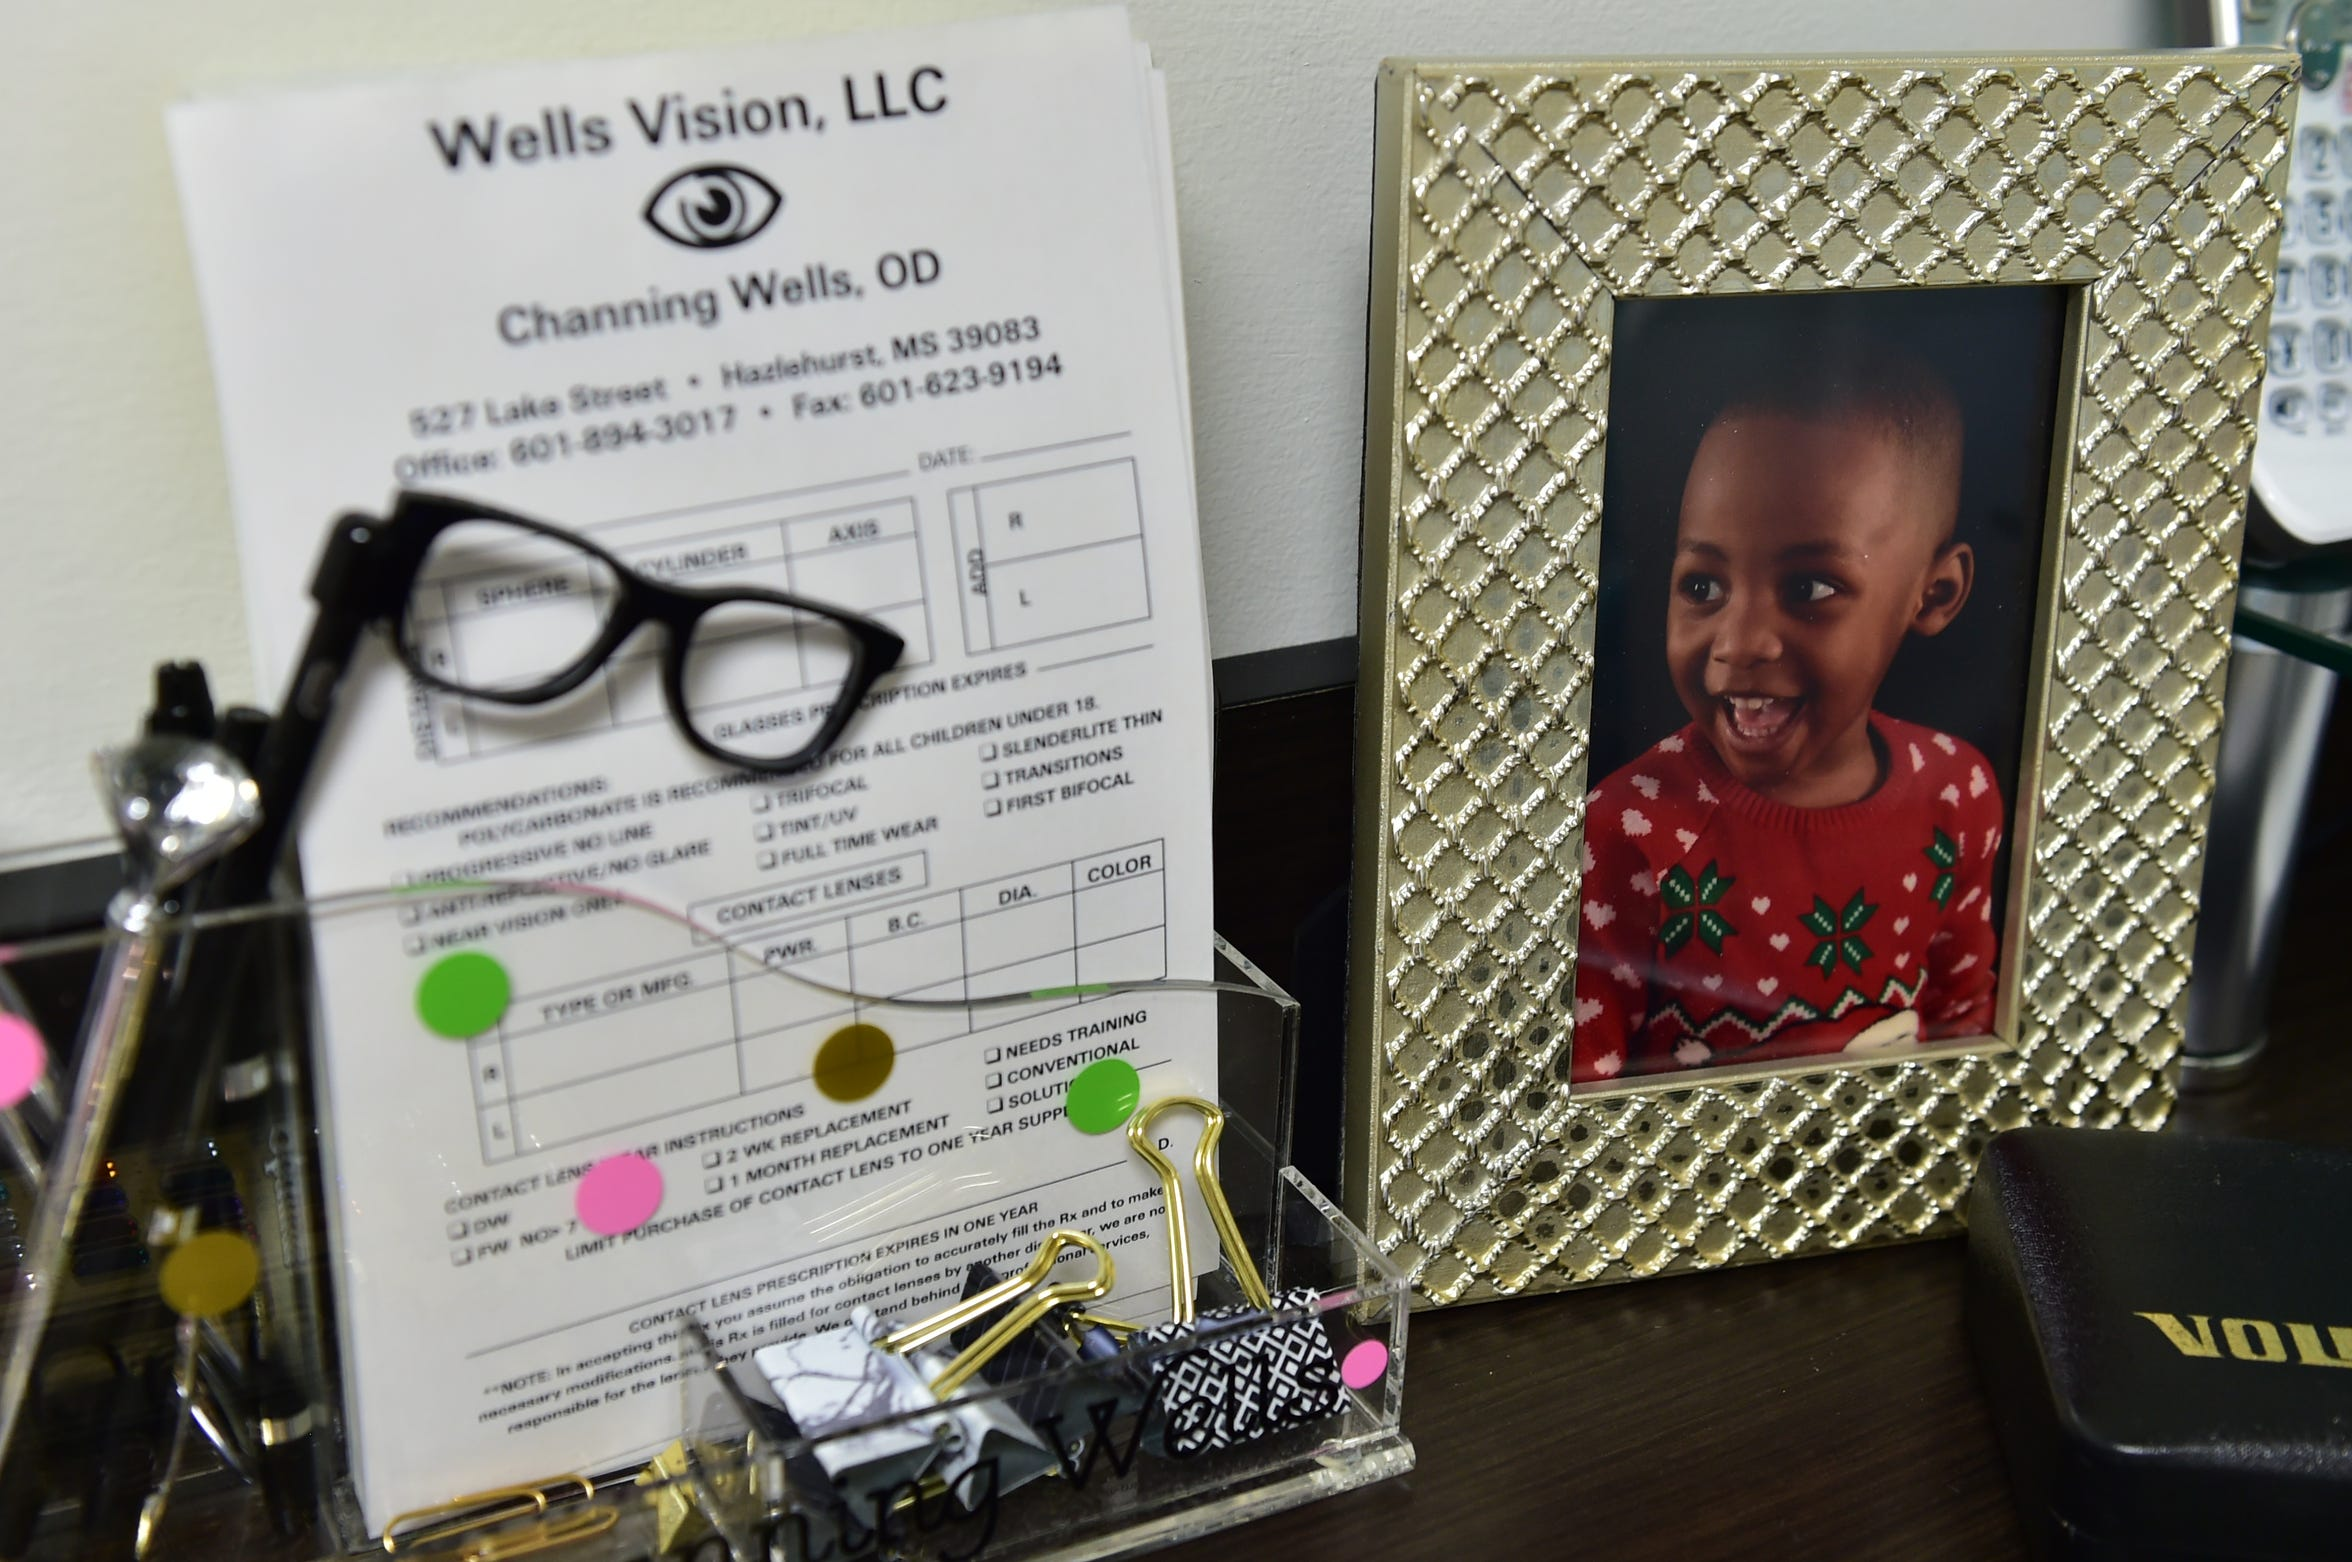 Dr. Channing Wells' exam room desk is adorned with a photo of her young son, Josie Wells Jr.